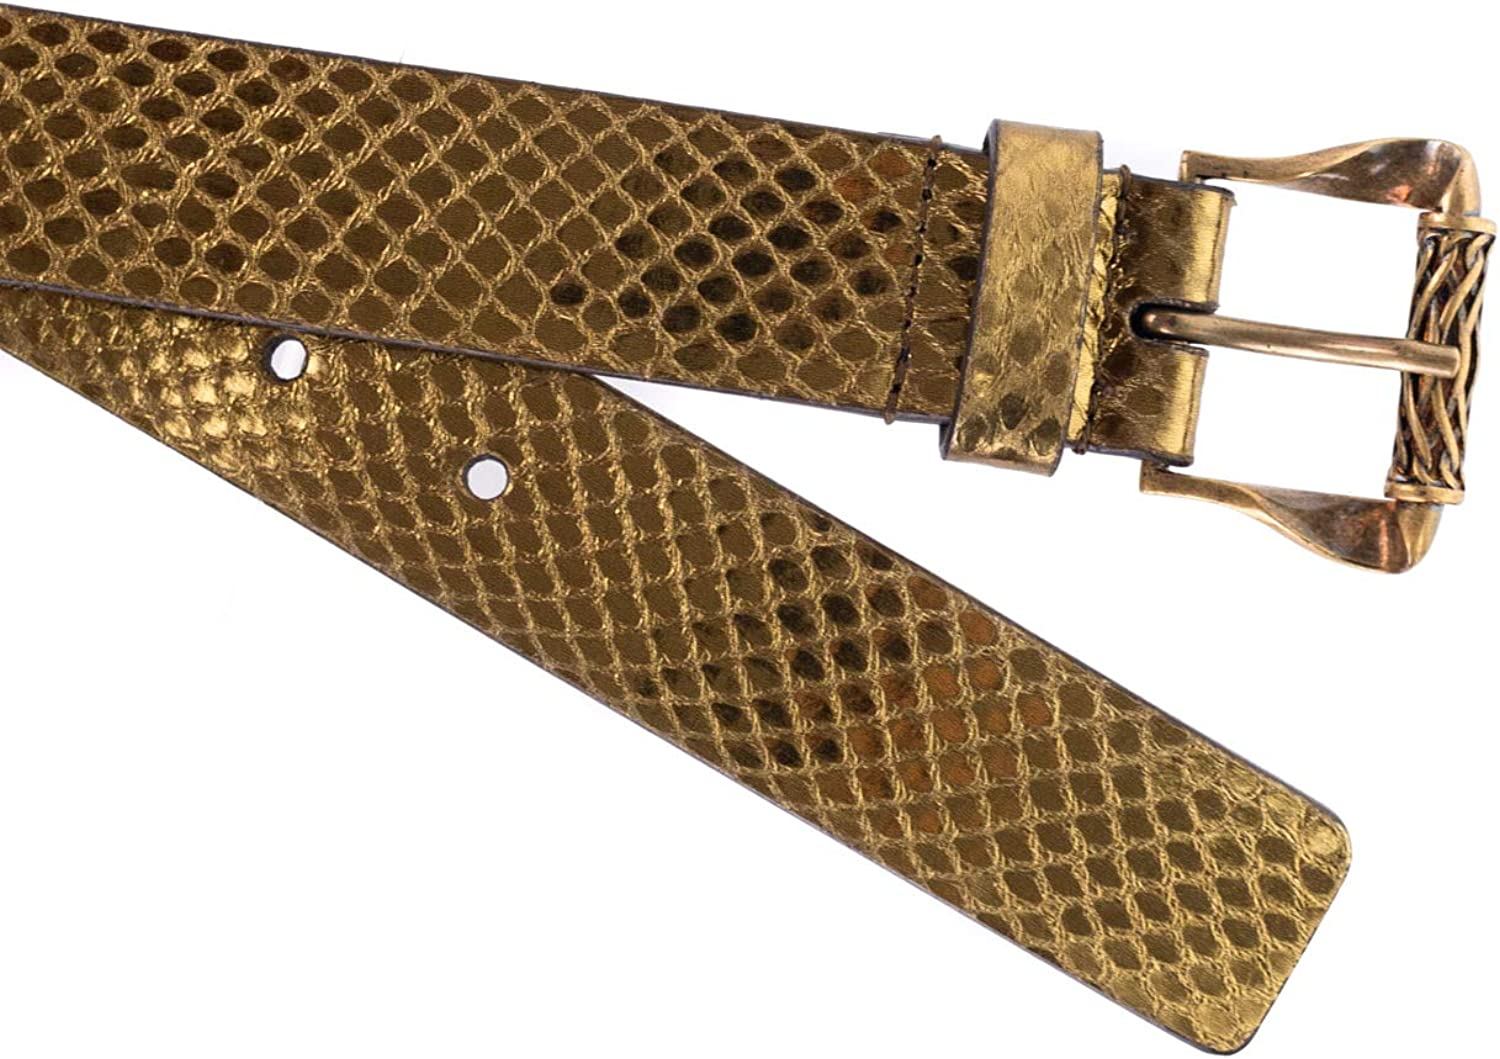 Roberto Cavalli Bronze Snake Texture Leather Carved Buckle Belts